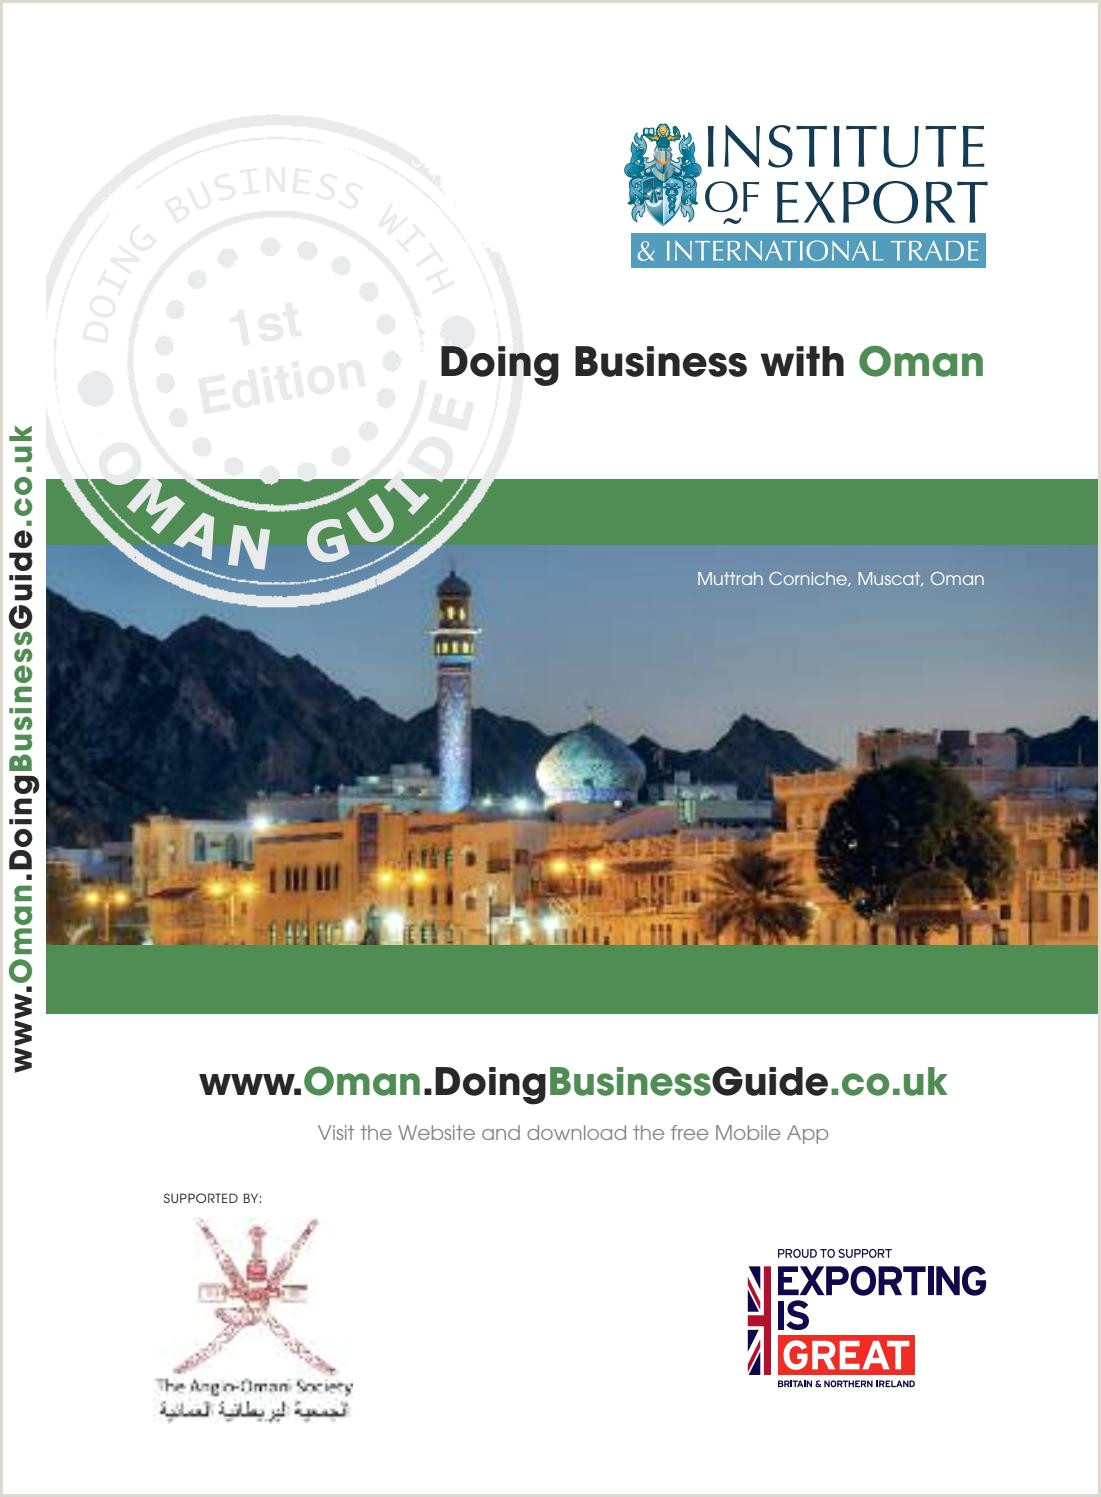 Best Business Cards For Unemployed Job Seekers Doing Business With Oman Guide By Doing Business Guides Issuu